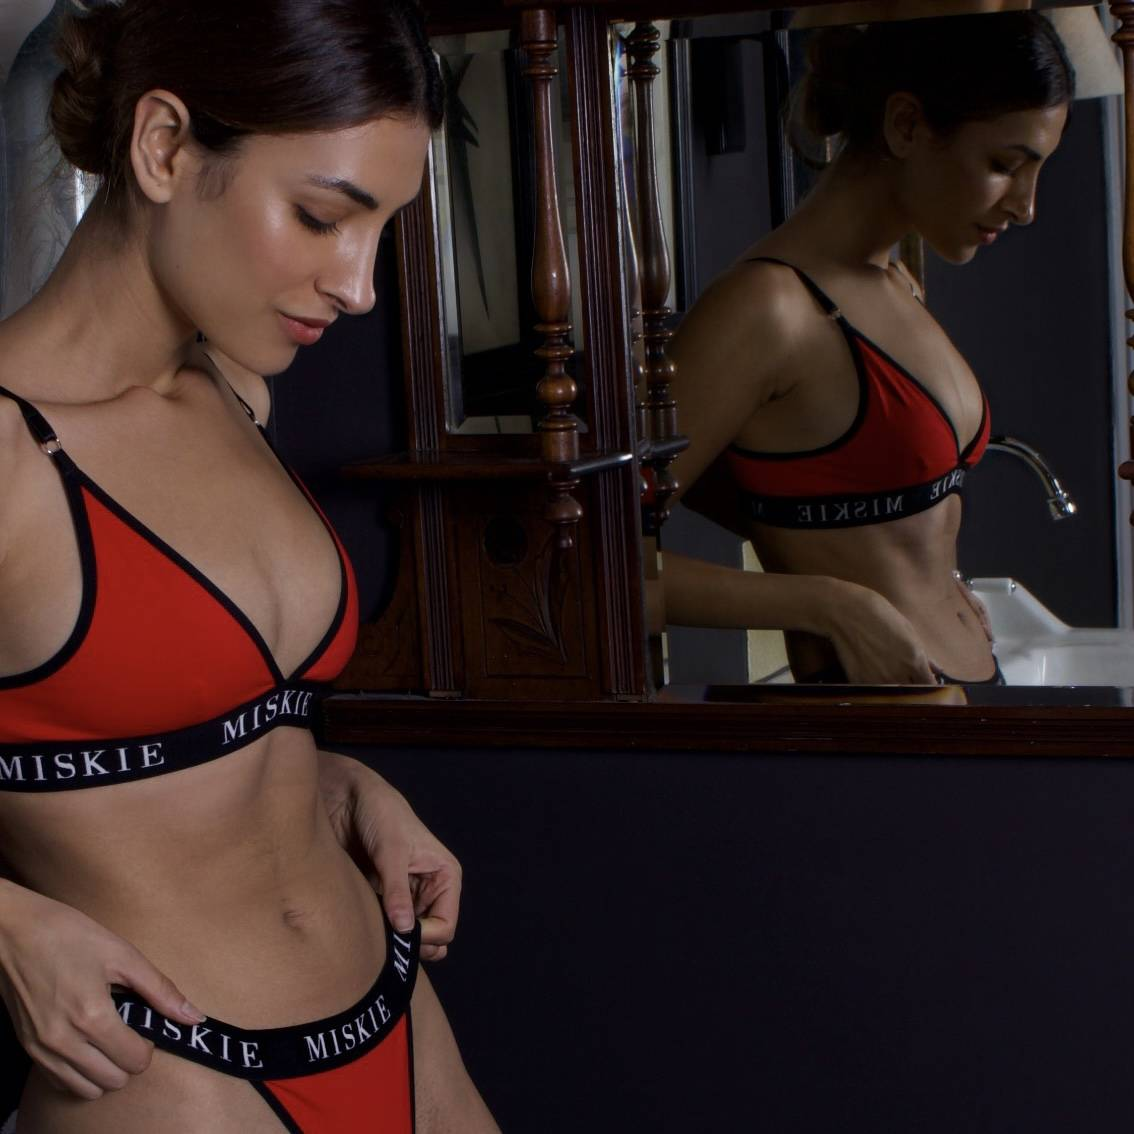 MISKIE London lingerie Bralette & thong set in red